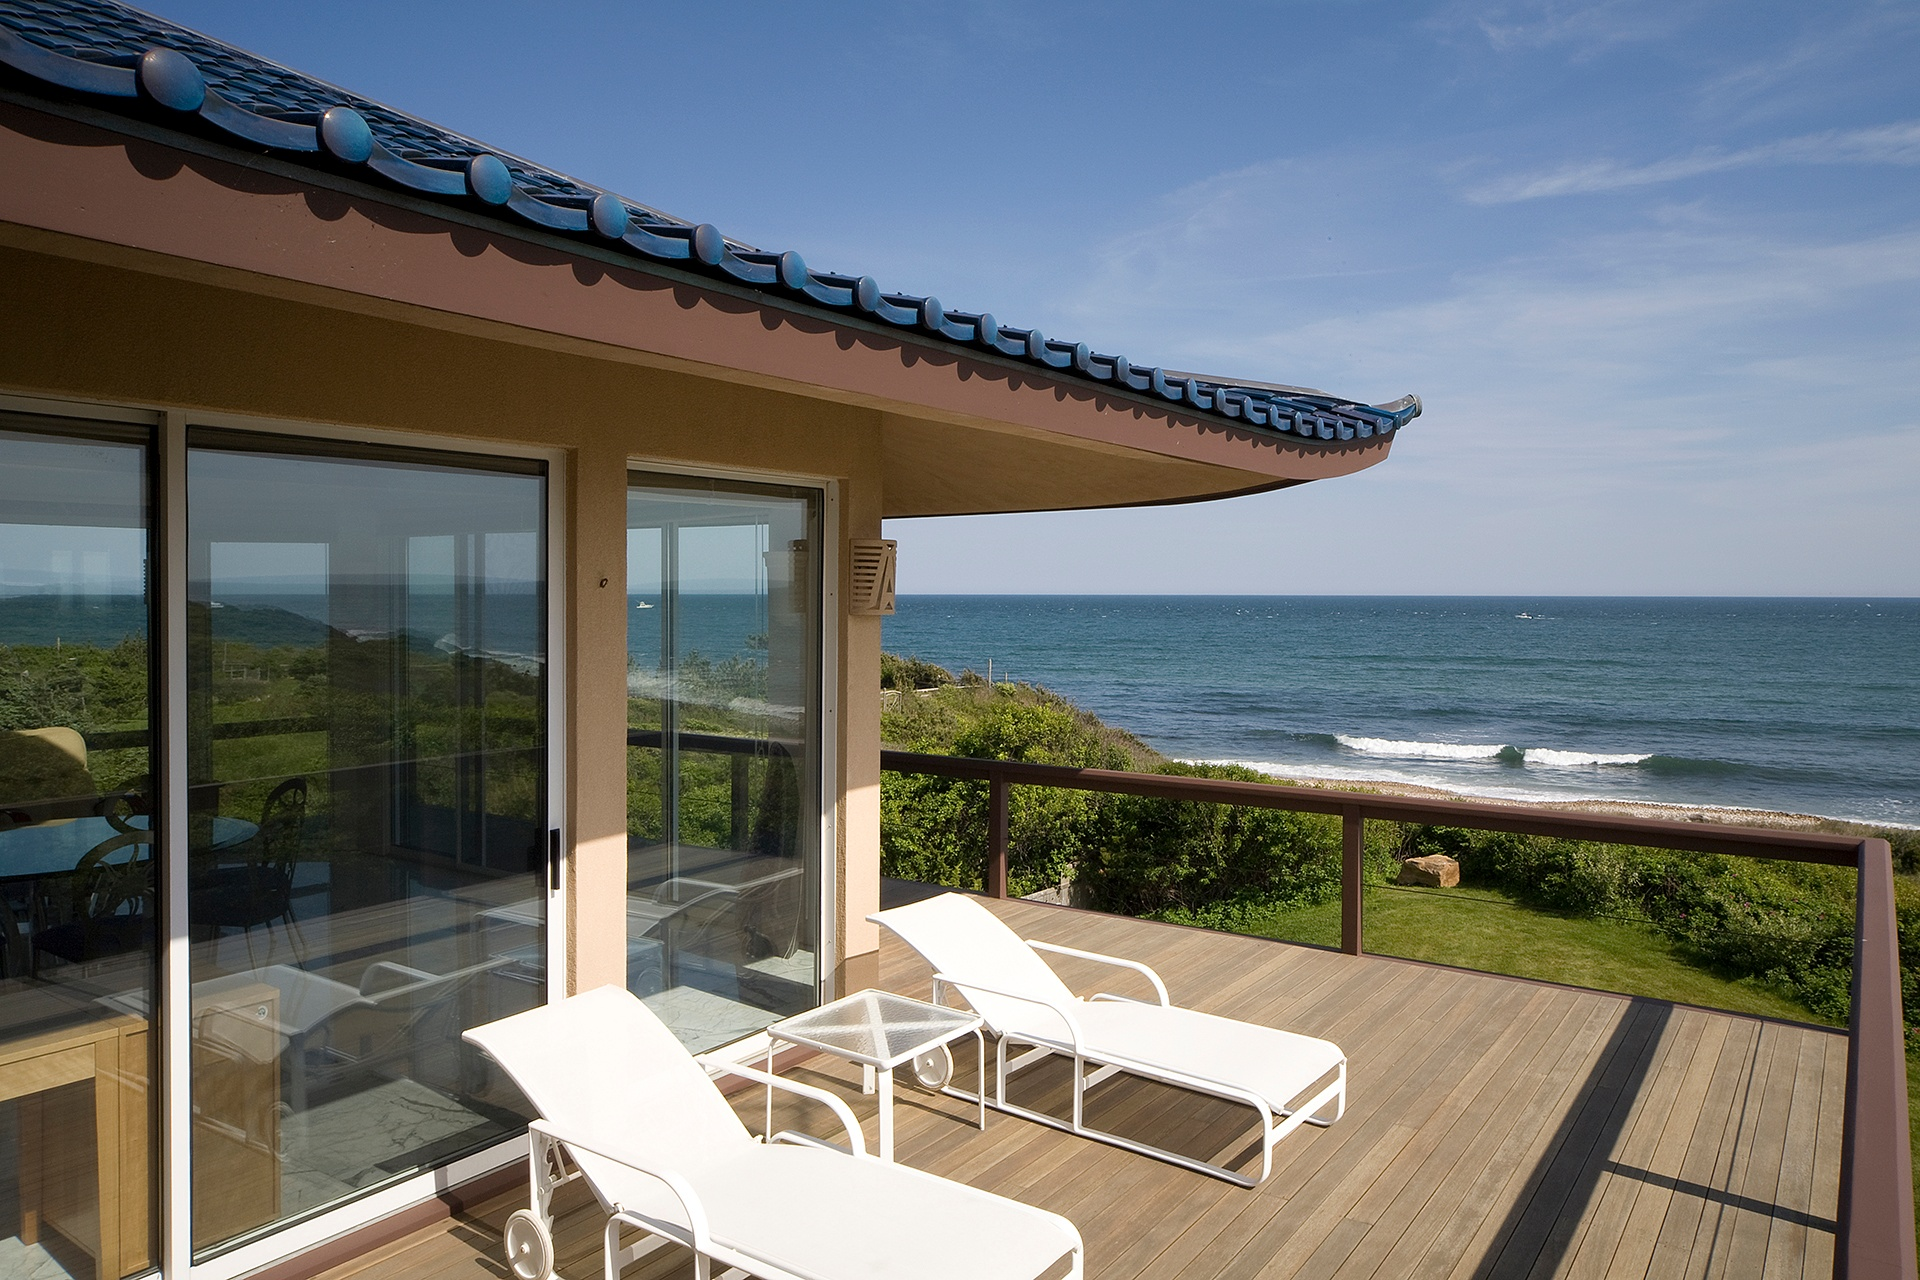 Beautiful teak decks provide plenty of spaces to relax and entertain against the dramatic backdrop of the Atlantic Ocean.